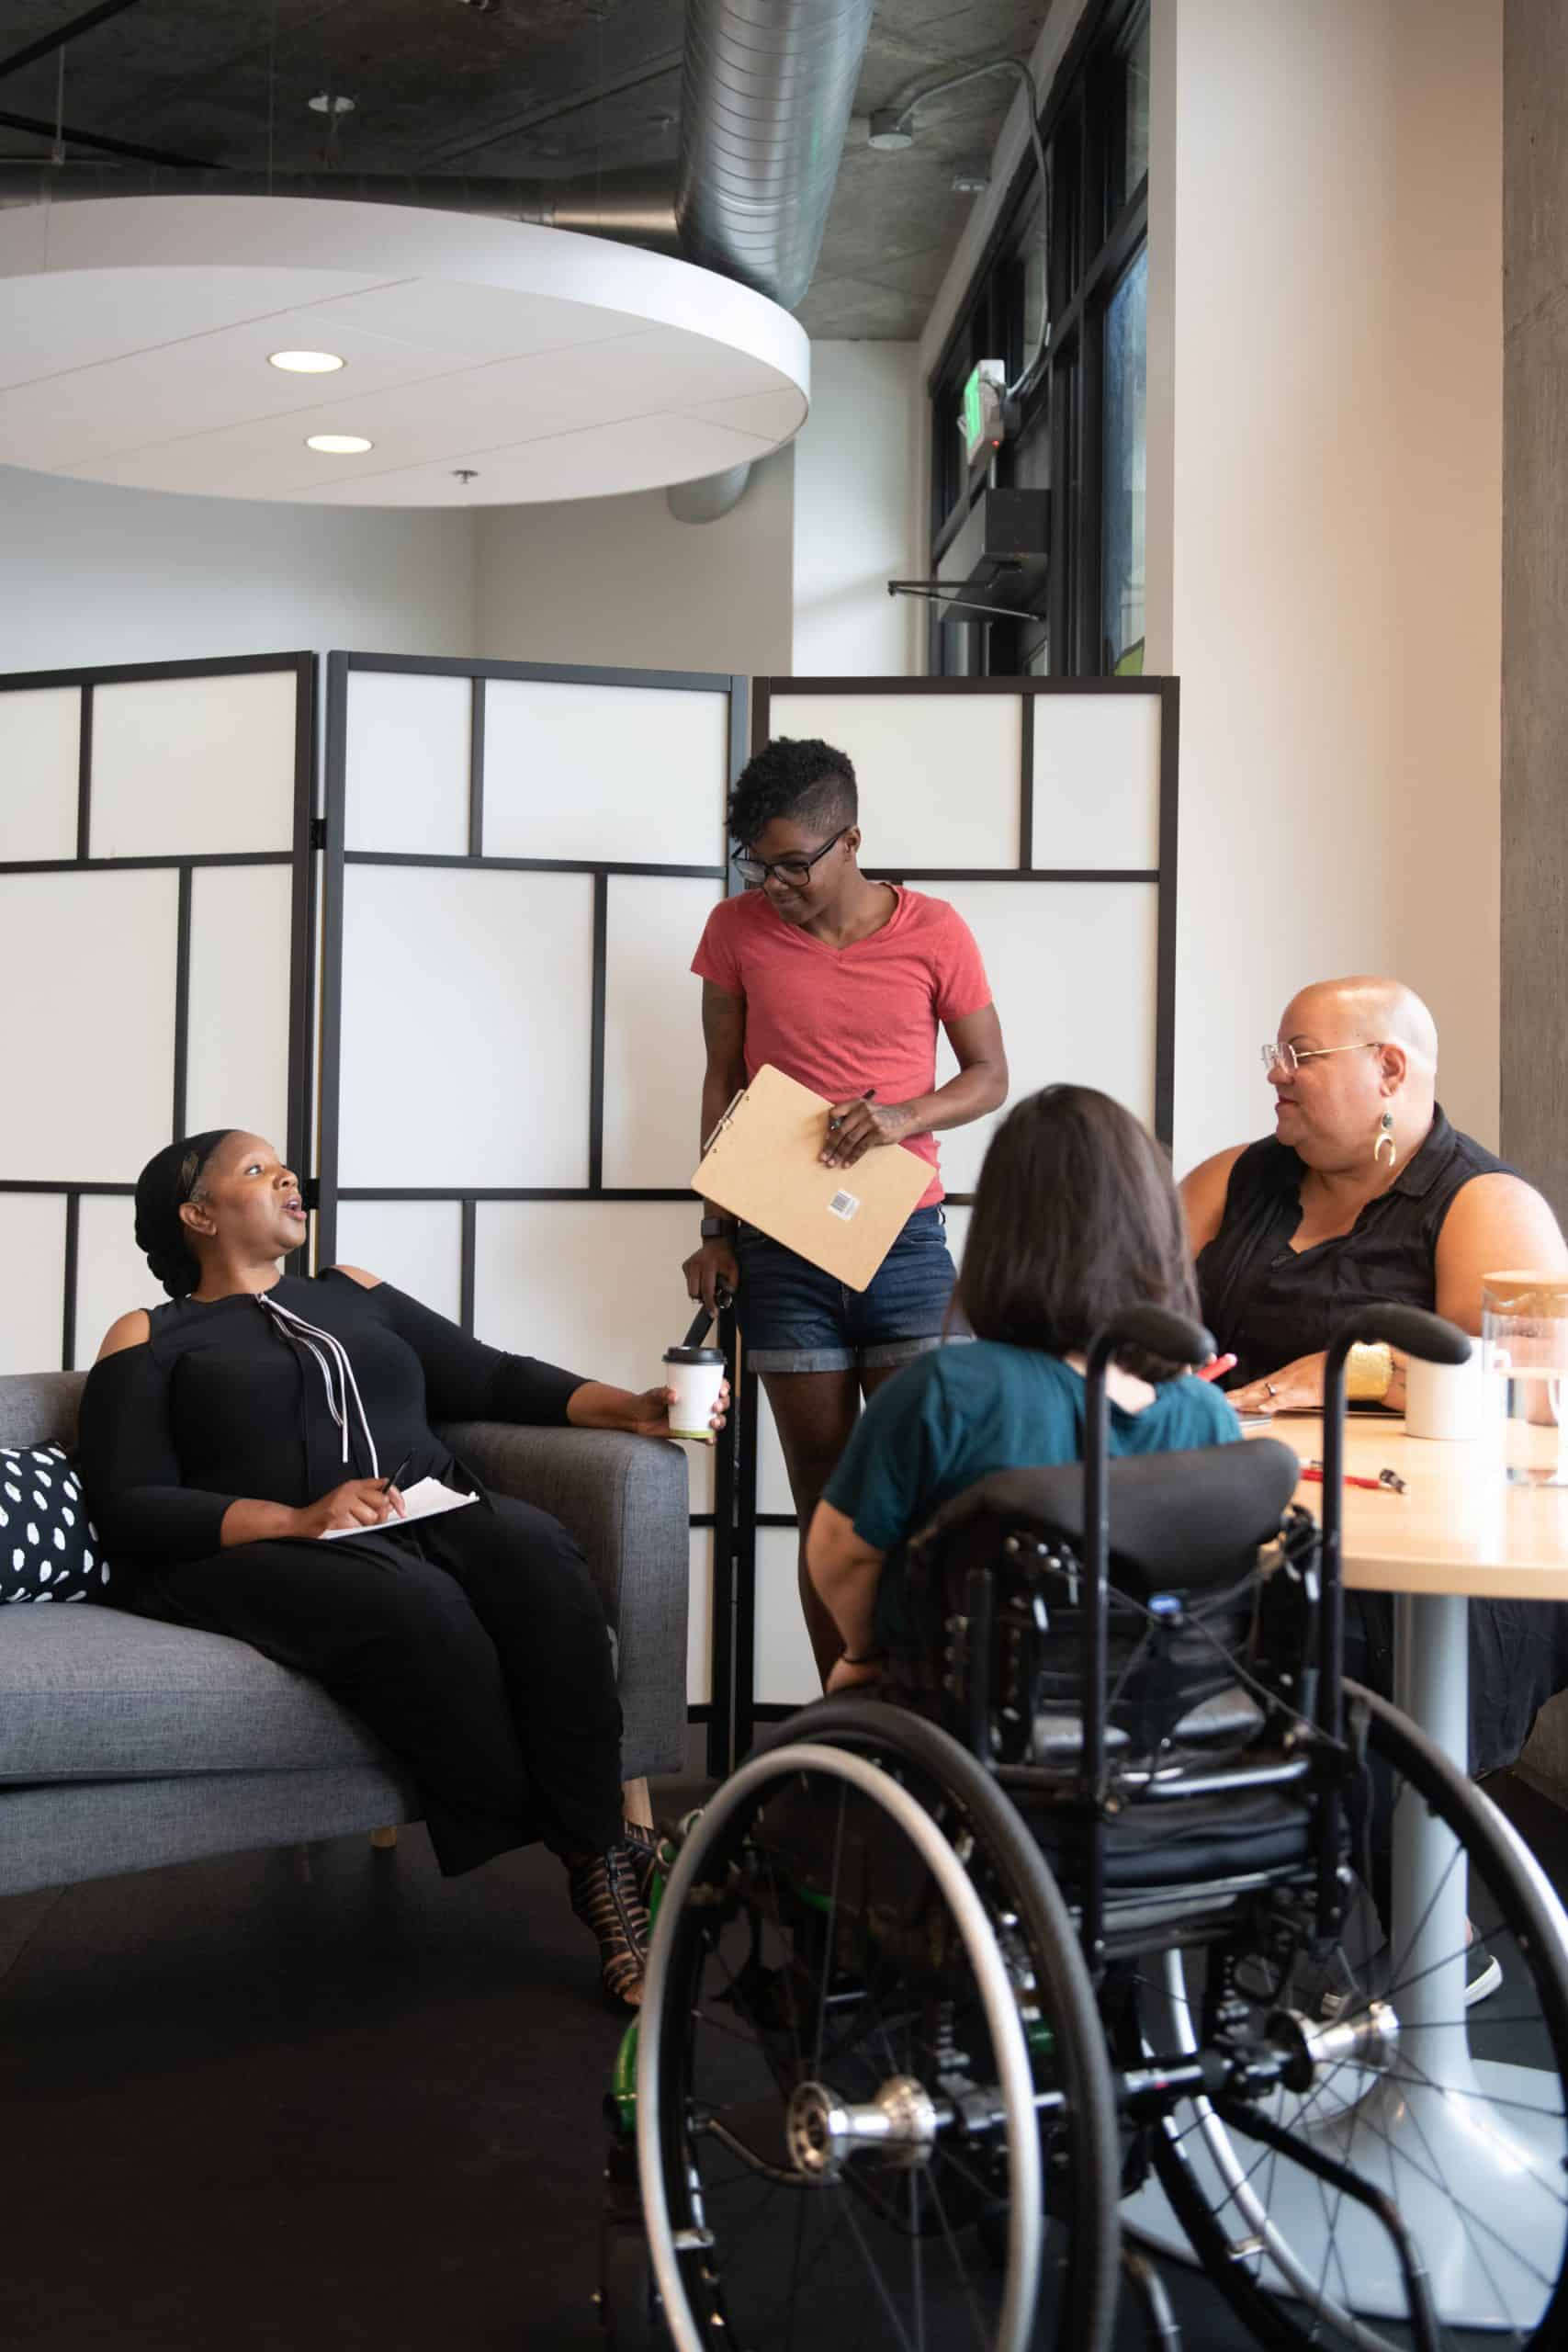 Four disabled people of color gather around a table during a meeting. A Black woman sitting on a couch gestures and speaks while the three others (a South Asian person sitting in a wheelchair, a Black non-binary person sitting in a chair, and a Black non-binary person standing with a clipboard and cane) face her and listen.